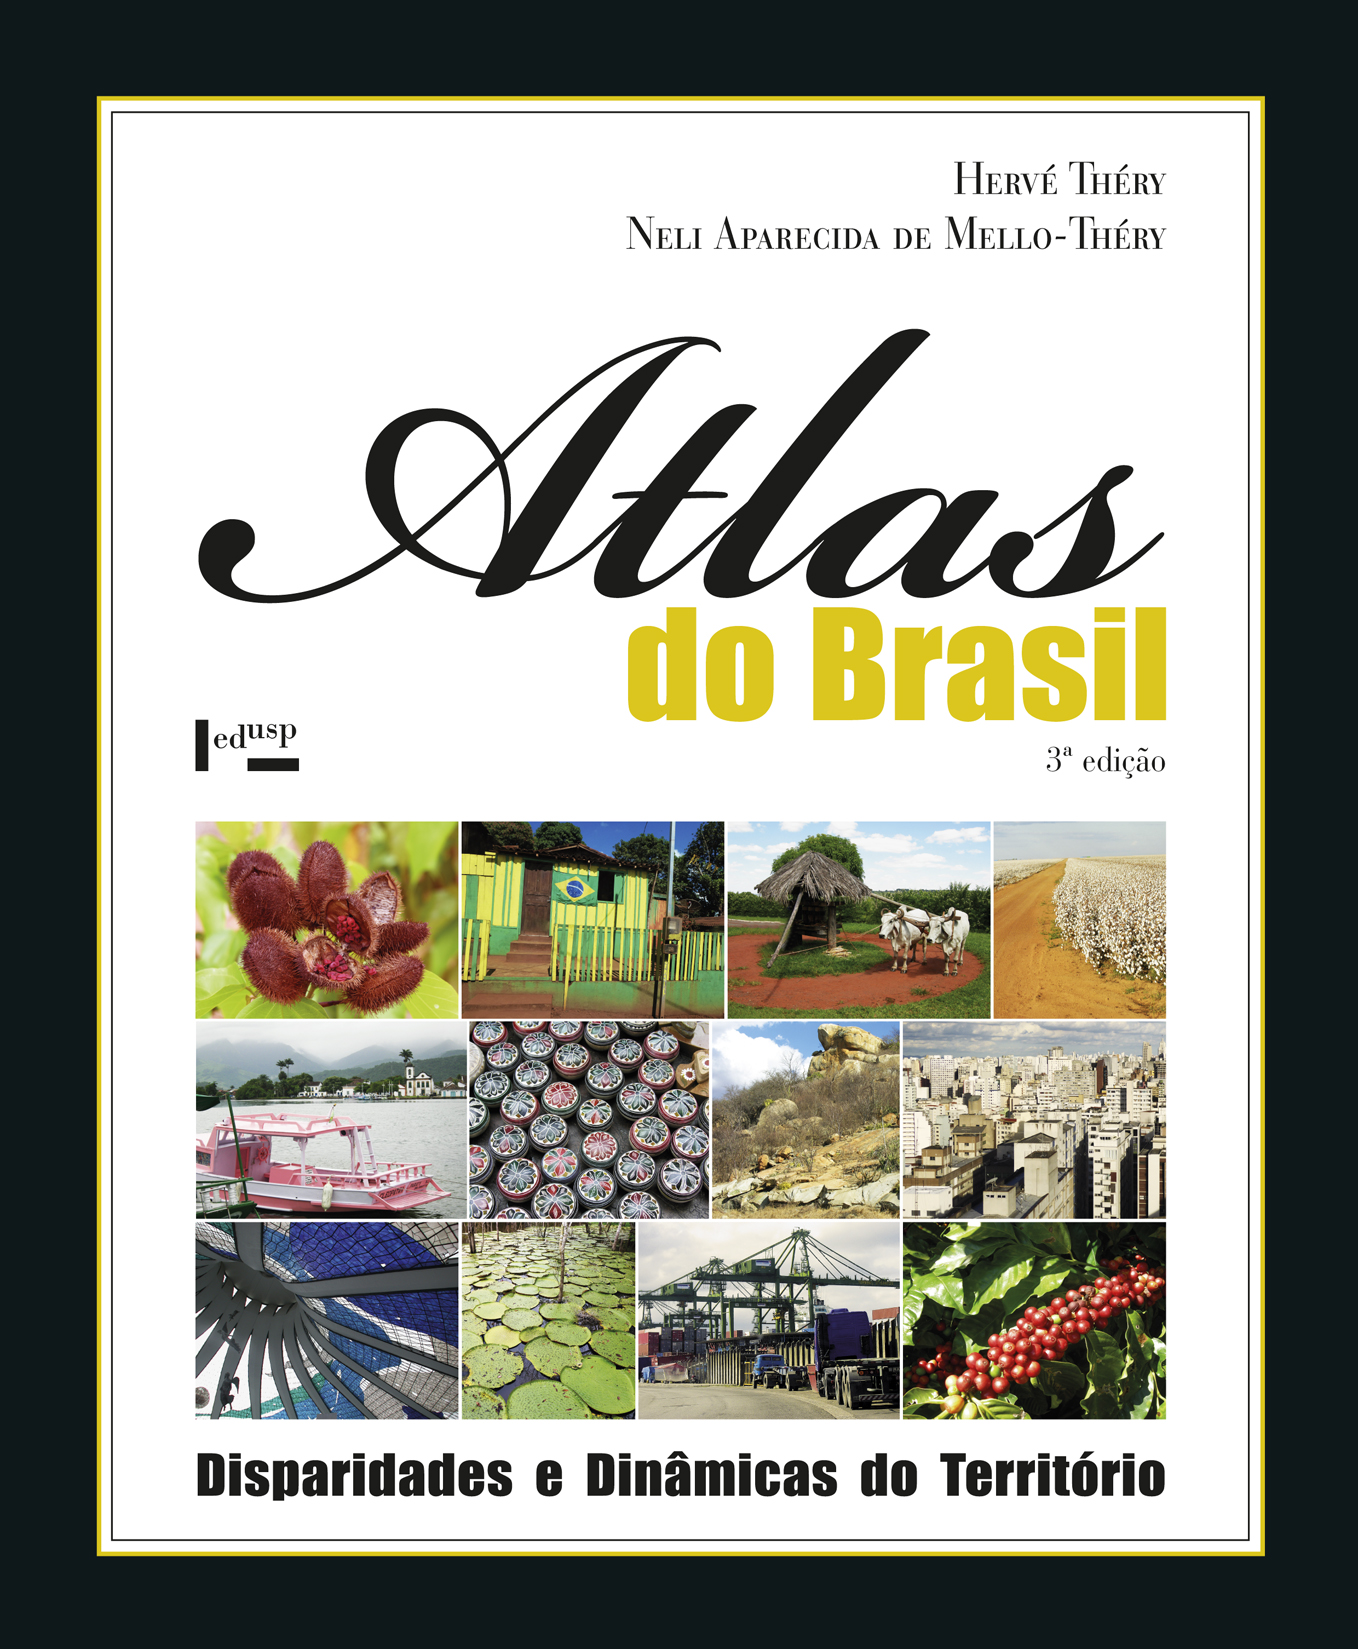 Brazil's Atlas: Disparities and Territory Dynamics